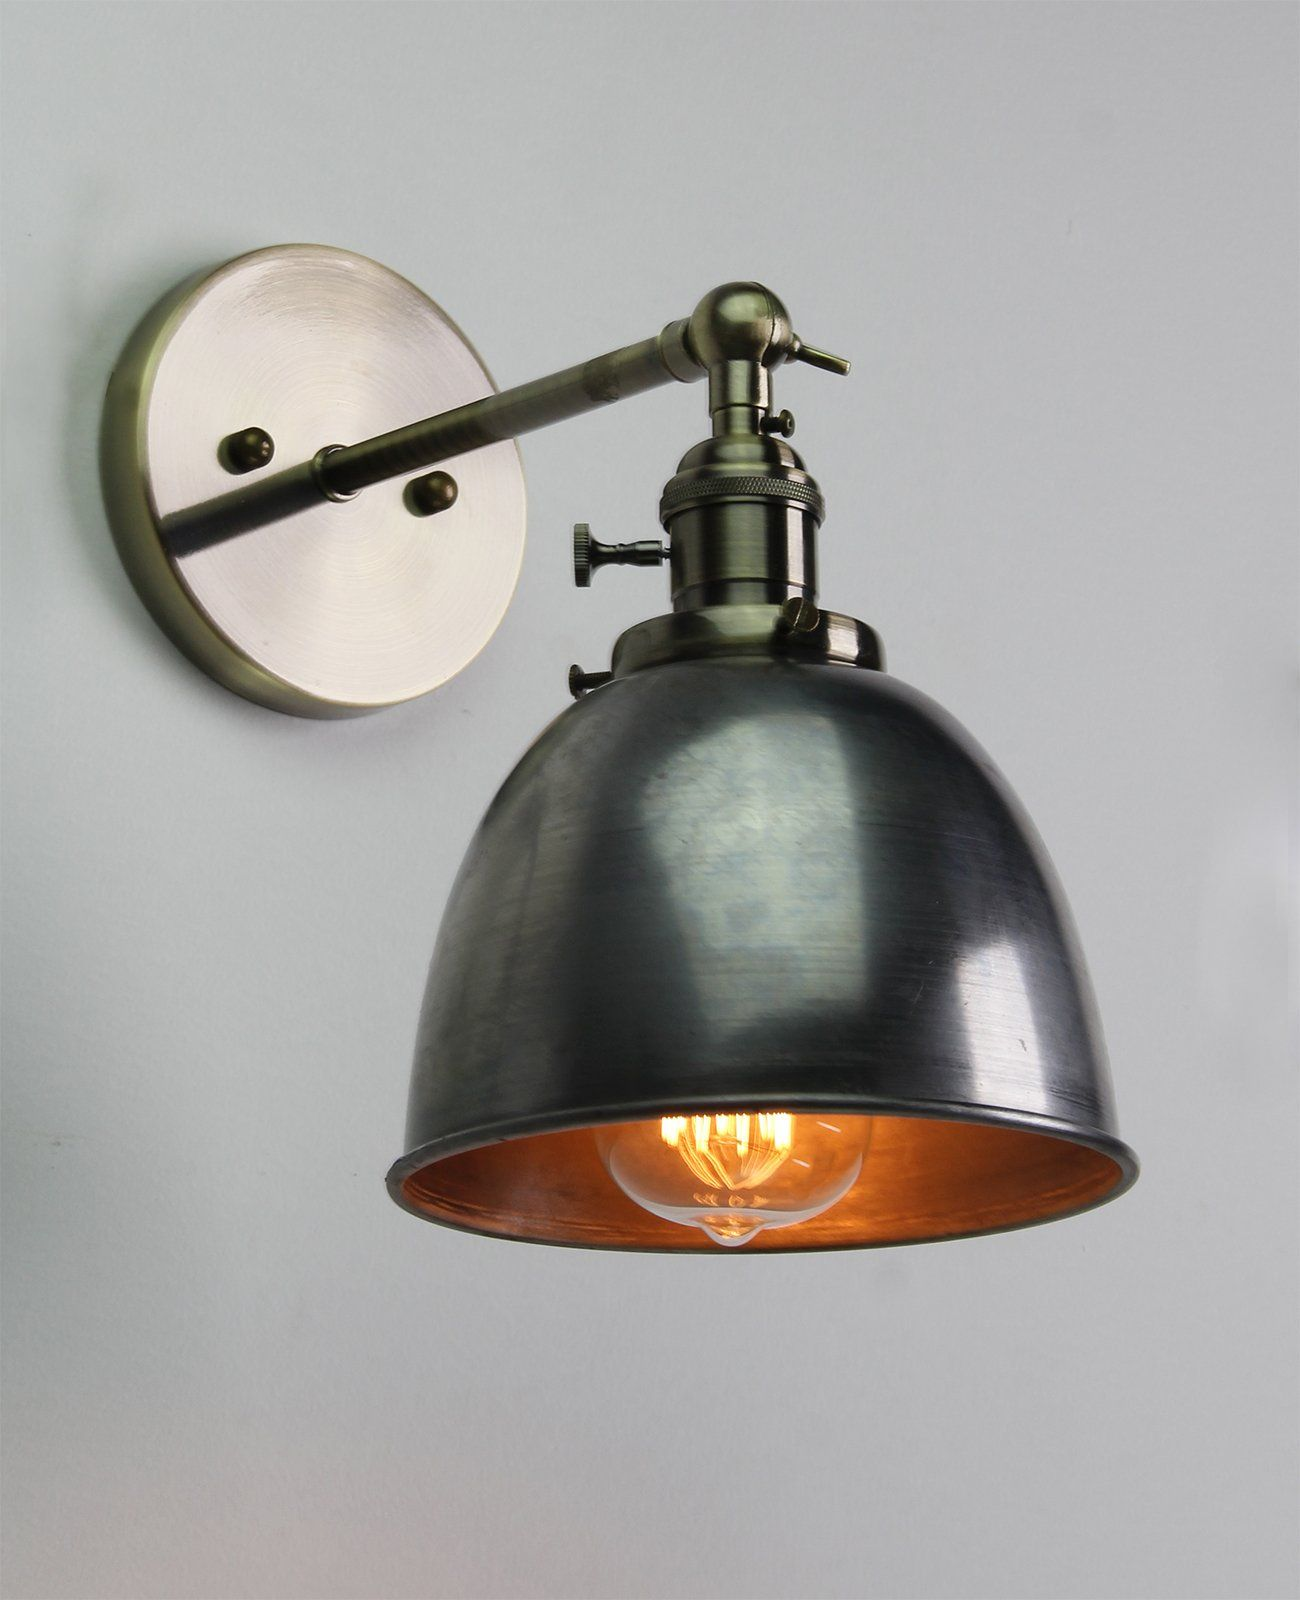 Details about VINTAGE ANTIQUE INDUSTRIAL BOWL SCONCE LOFT WALL